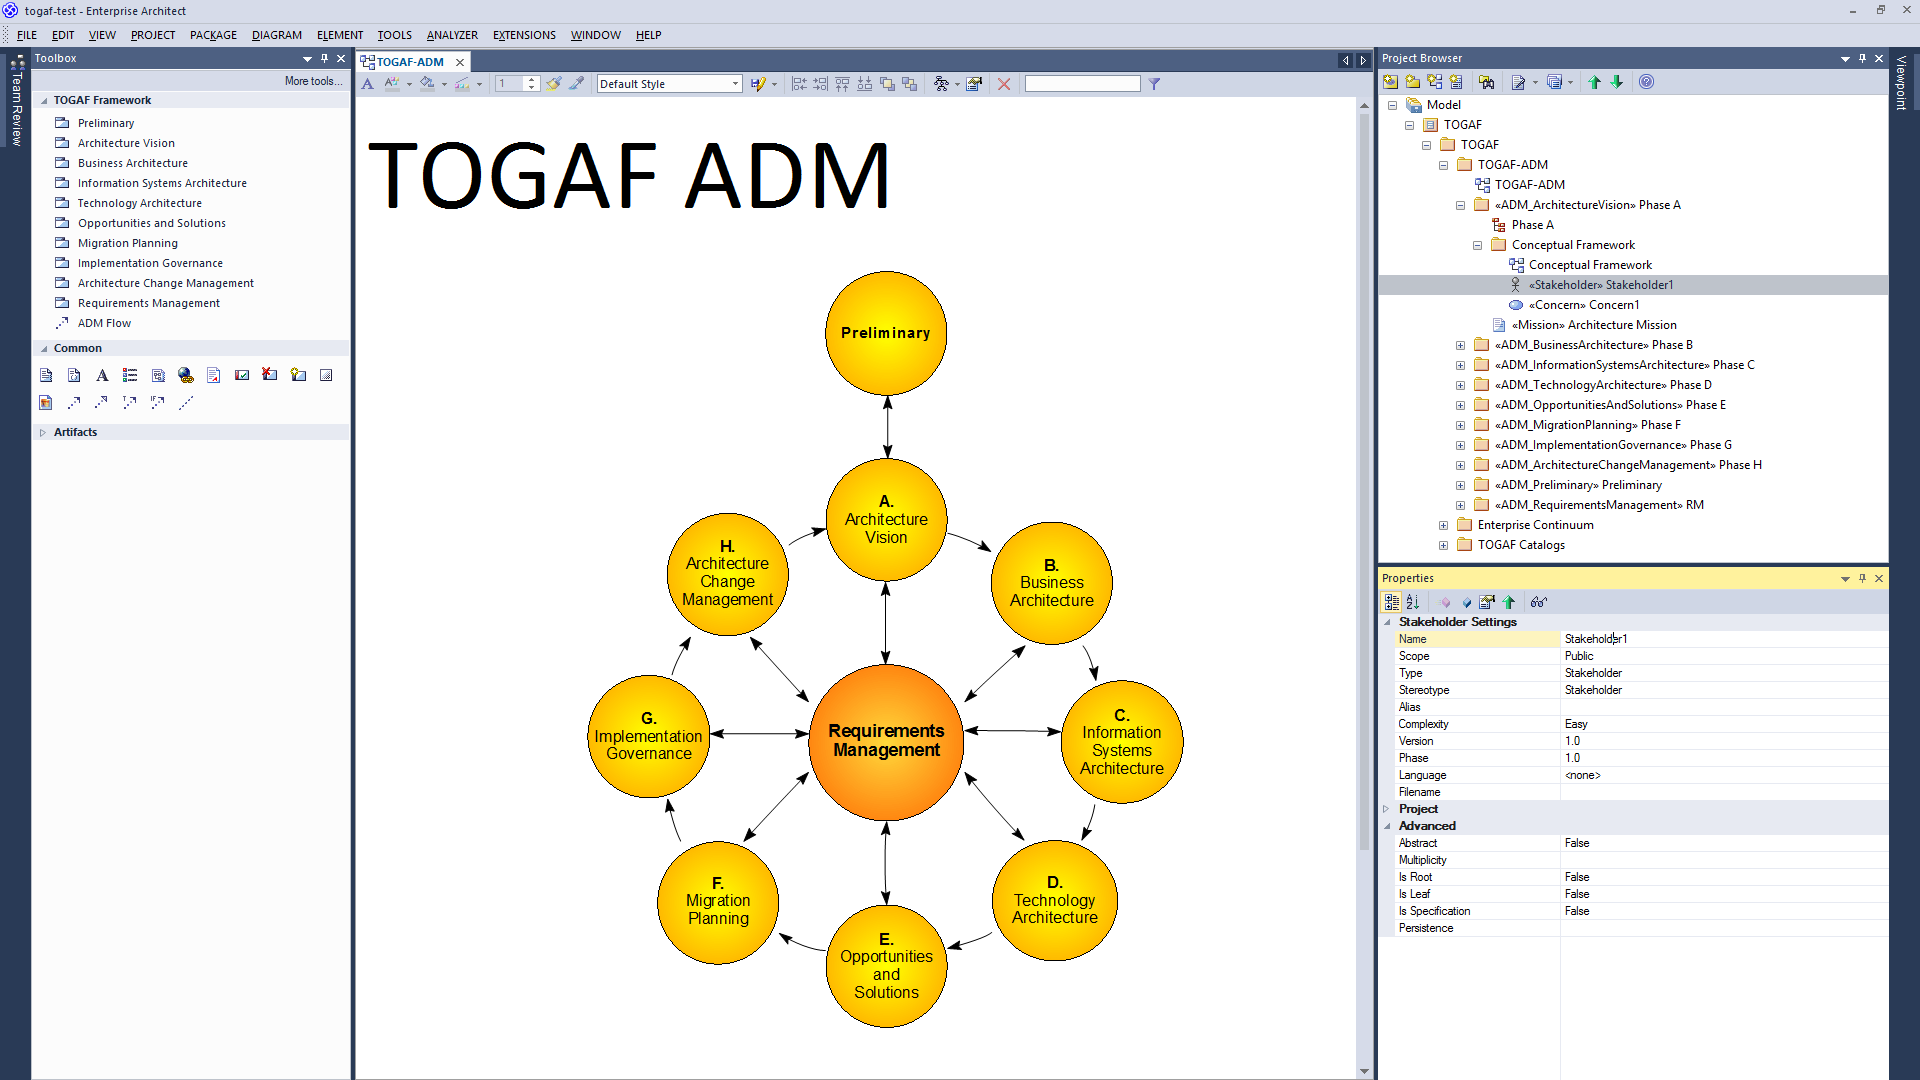 TOGAF 9 Interface TOGAF Interface. Enterprise Continuum